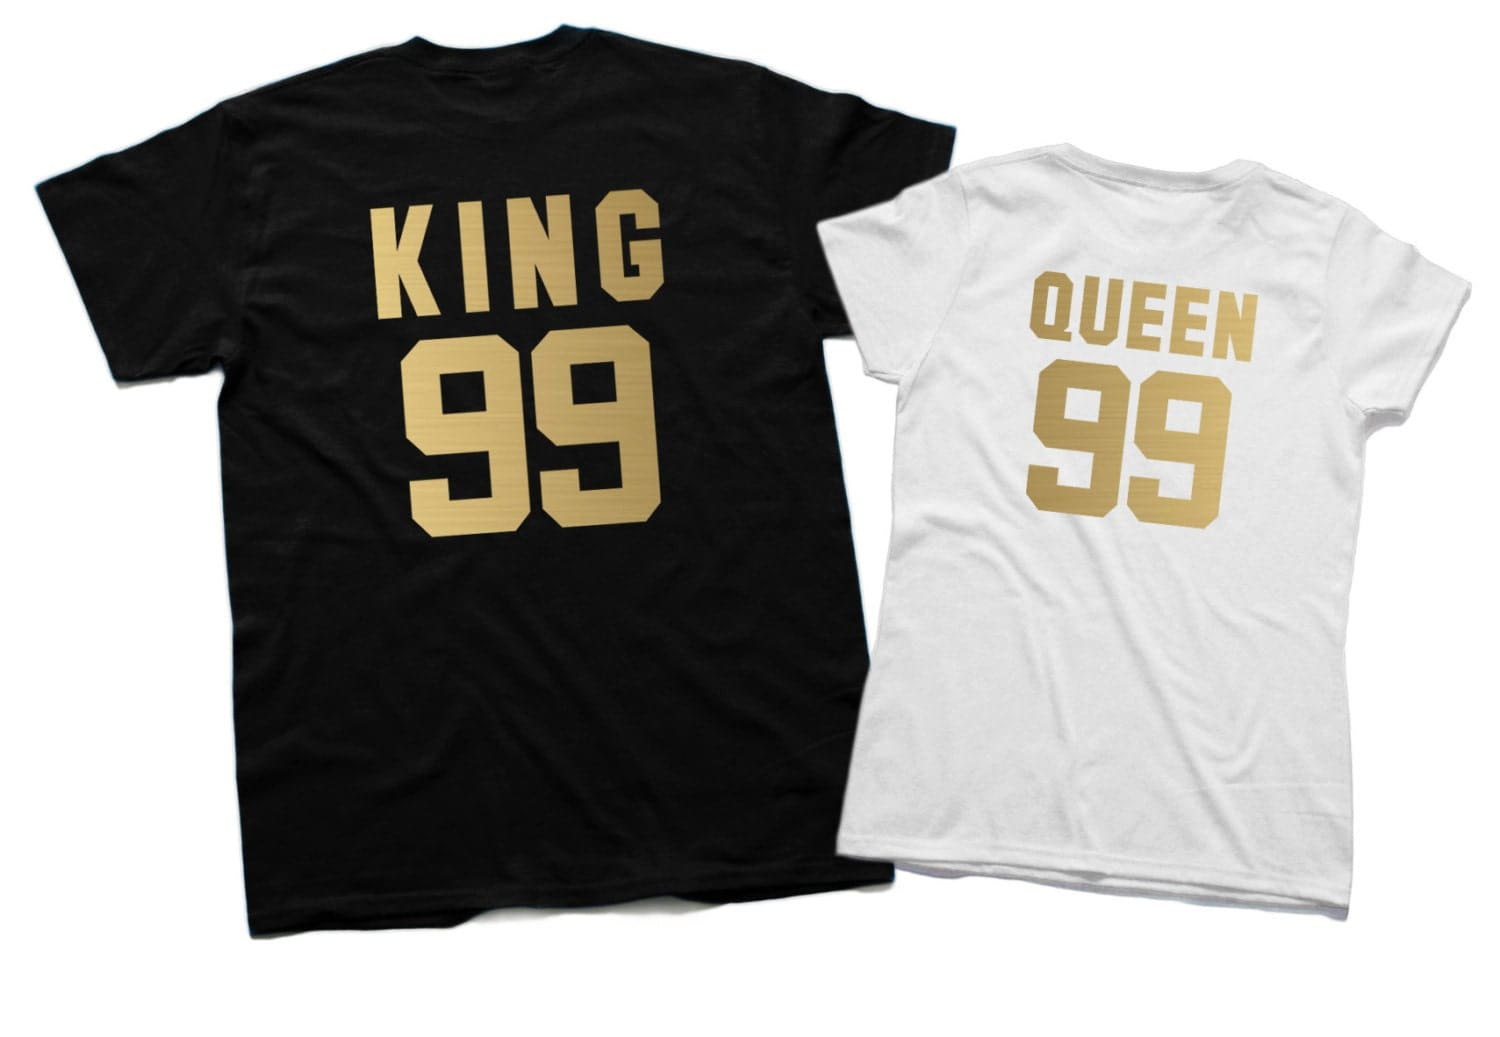 King and Queen shirts King 99 Queen 99 Matching Family